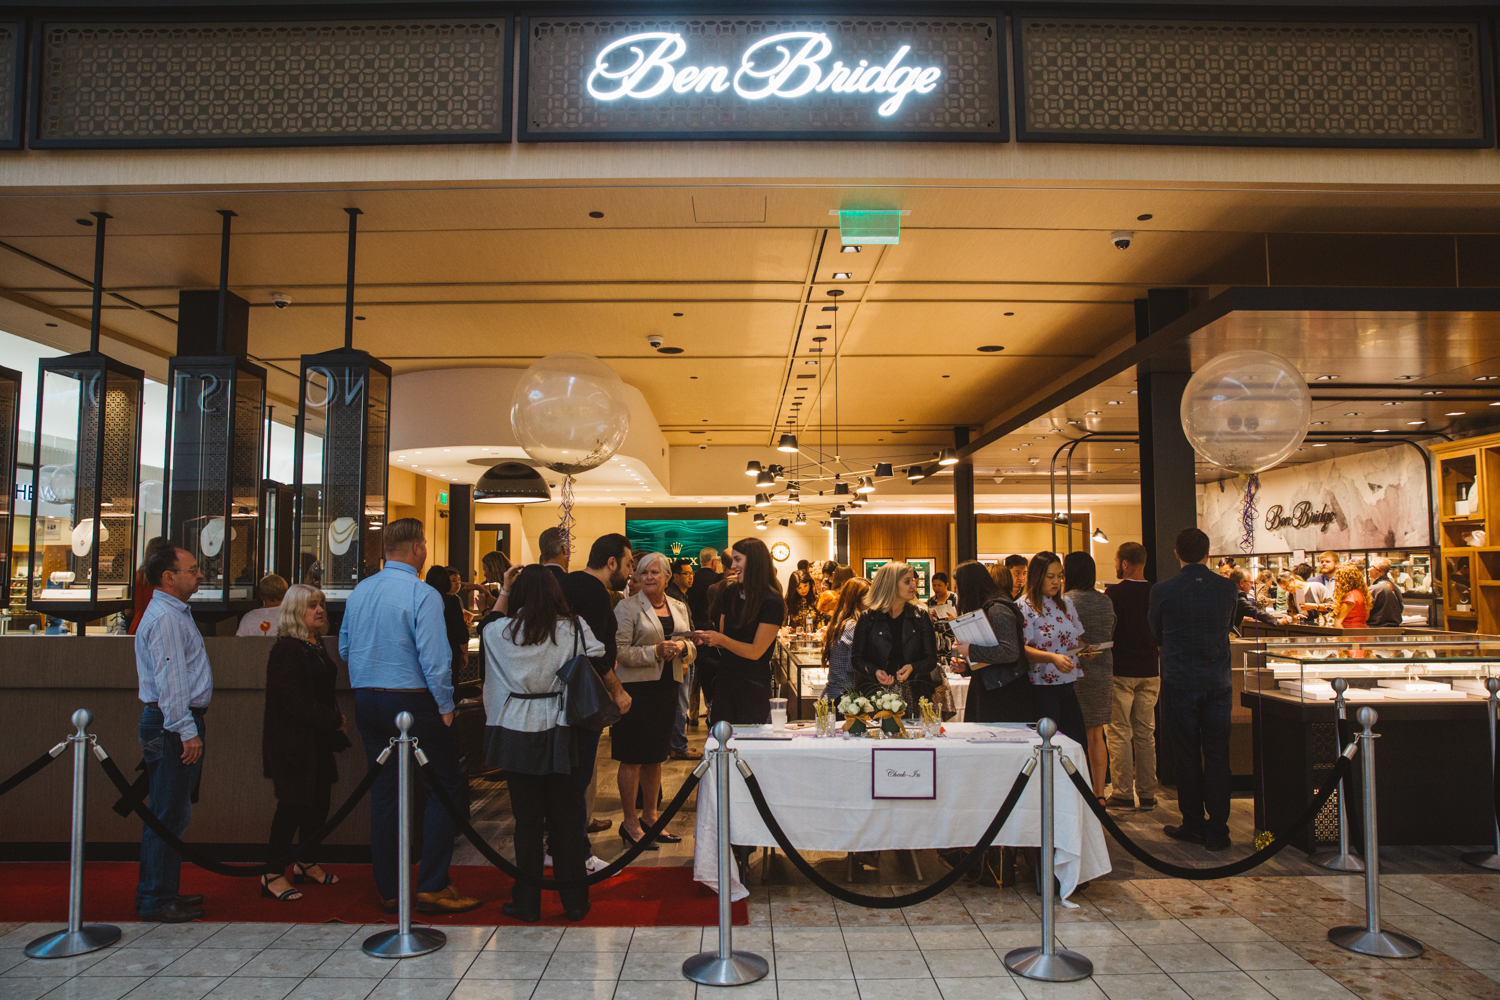 Ben Bridge has been in the jewelry and watch-making business for ages, but last night we got together to celebrate the grand re-opening of their Heritage Location in Westfield Southcenter. Los Agaves poured wine, Din Tai Fung served apps, and 5th generation Lisa Bridge introduced patrons to the new store design, including their Watchmaker Corner and Curio Cabinet. (Image: Ryan McBoyle / Seattle Refined)